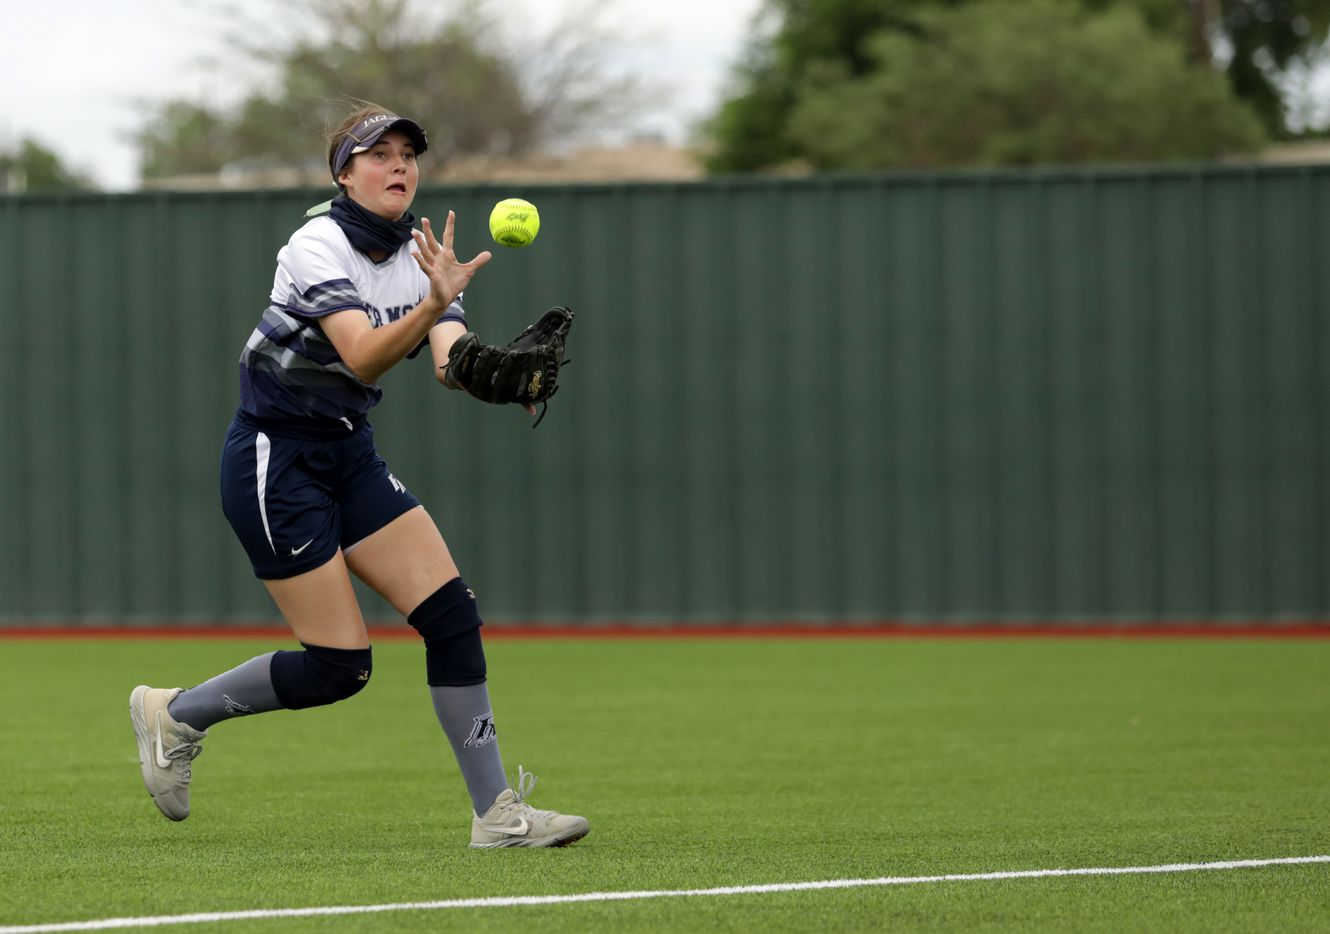 Flower Mound High School player #23, Courtney Cogbill, snags the ball during a softball game against Allen High School at Allen High School in Allen, TX, on May 15, 2021. (Jason Janik/Special Contributor)